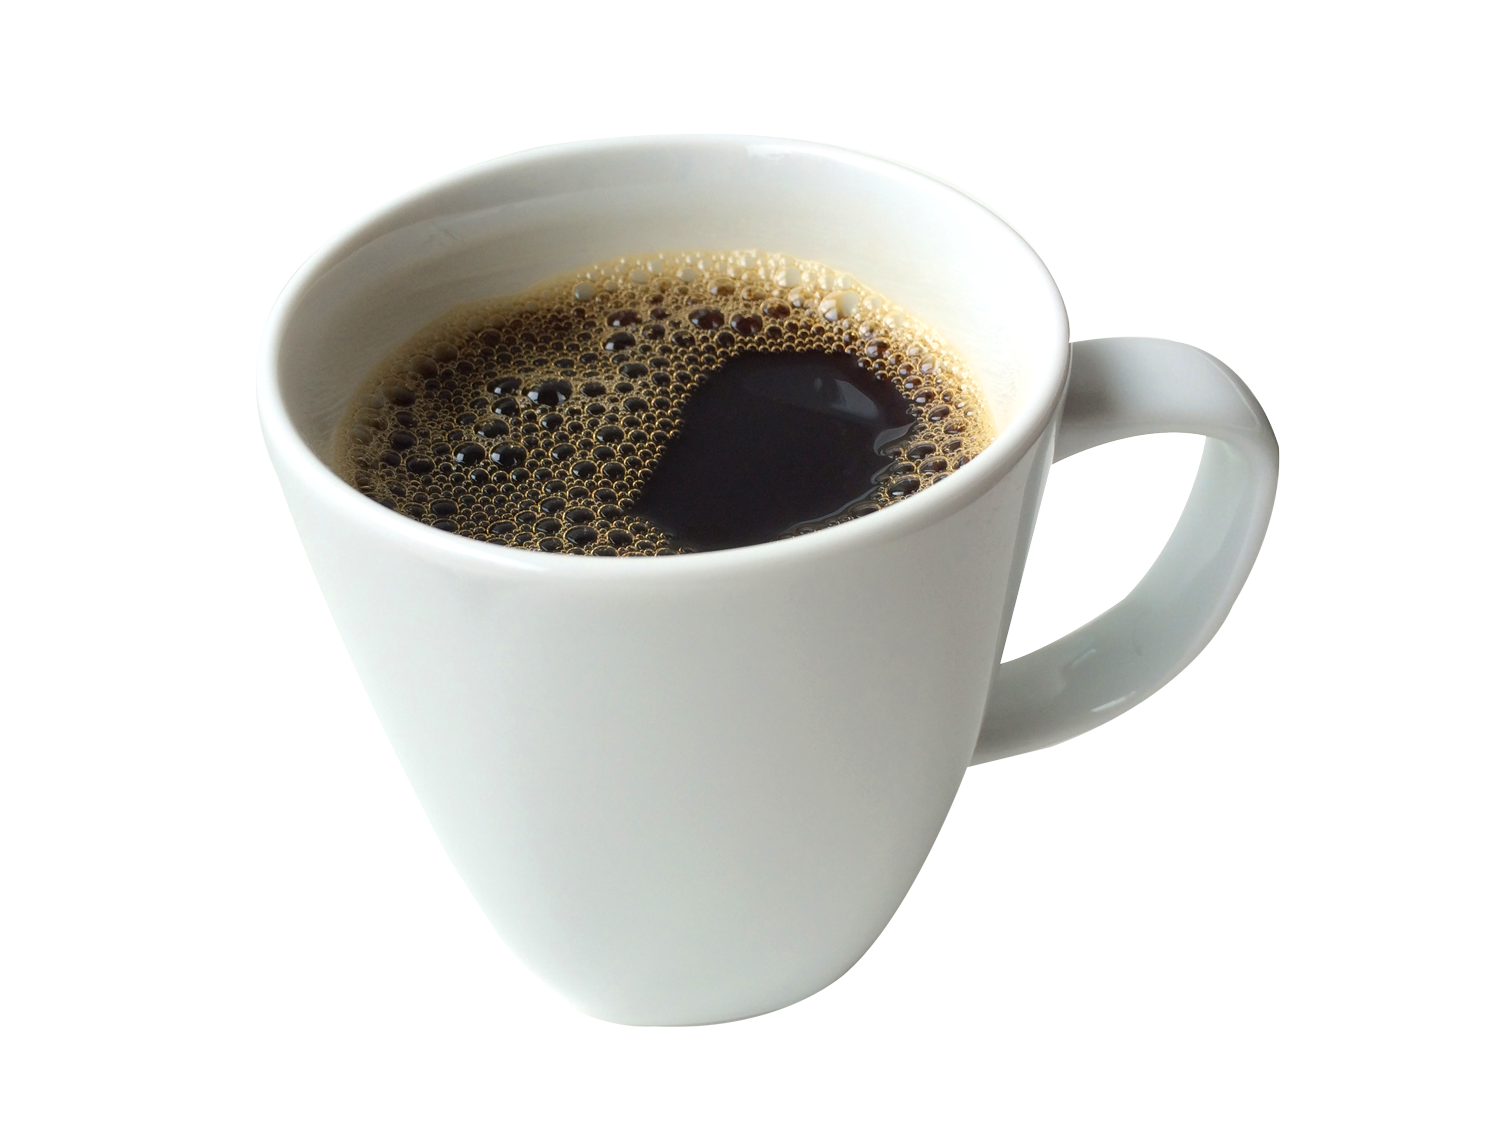 Coffee transparent png. Images free download pngmart